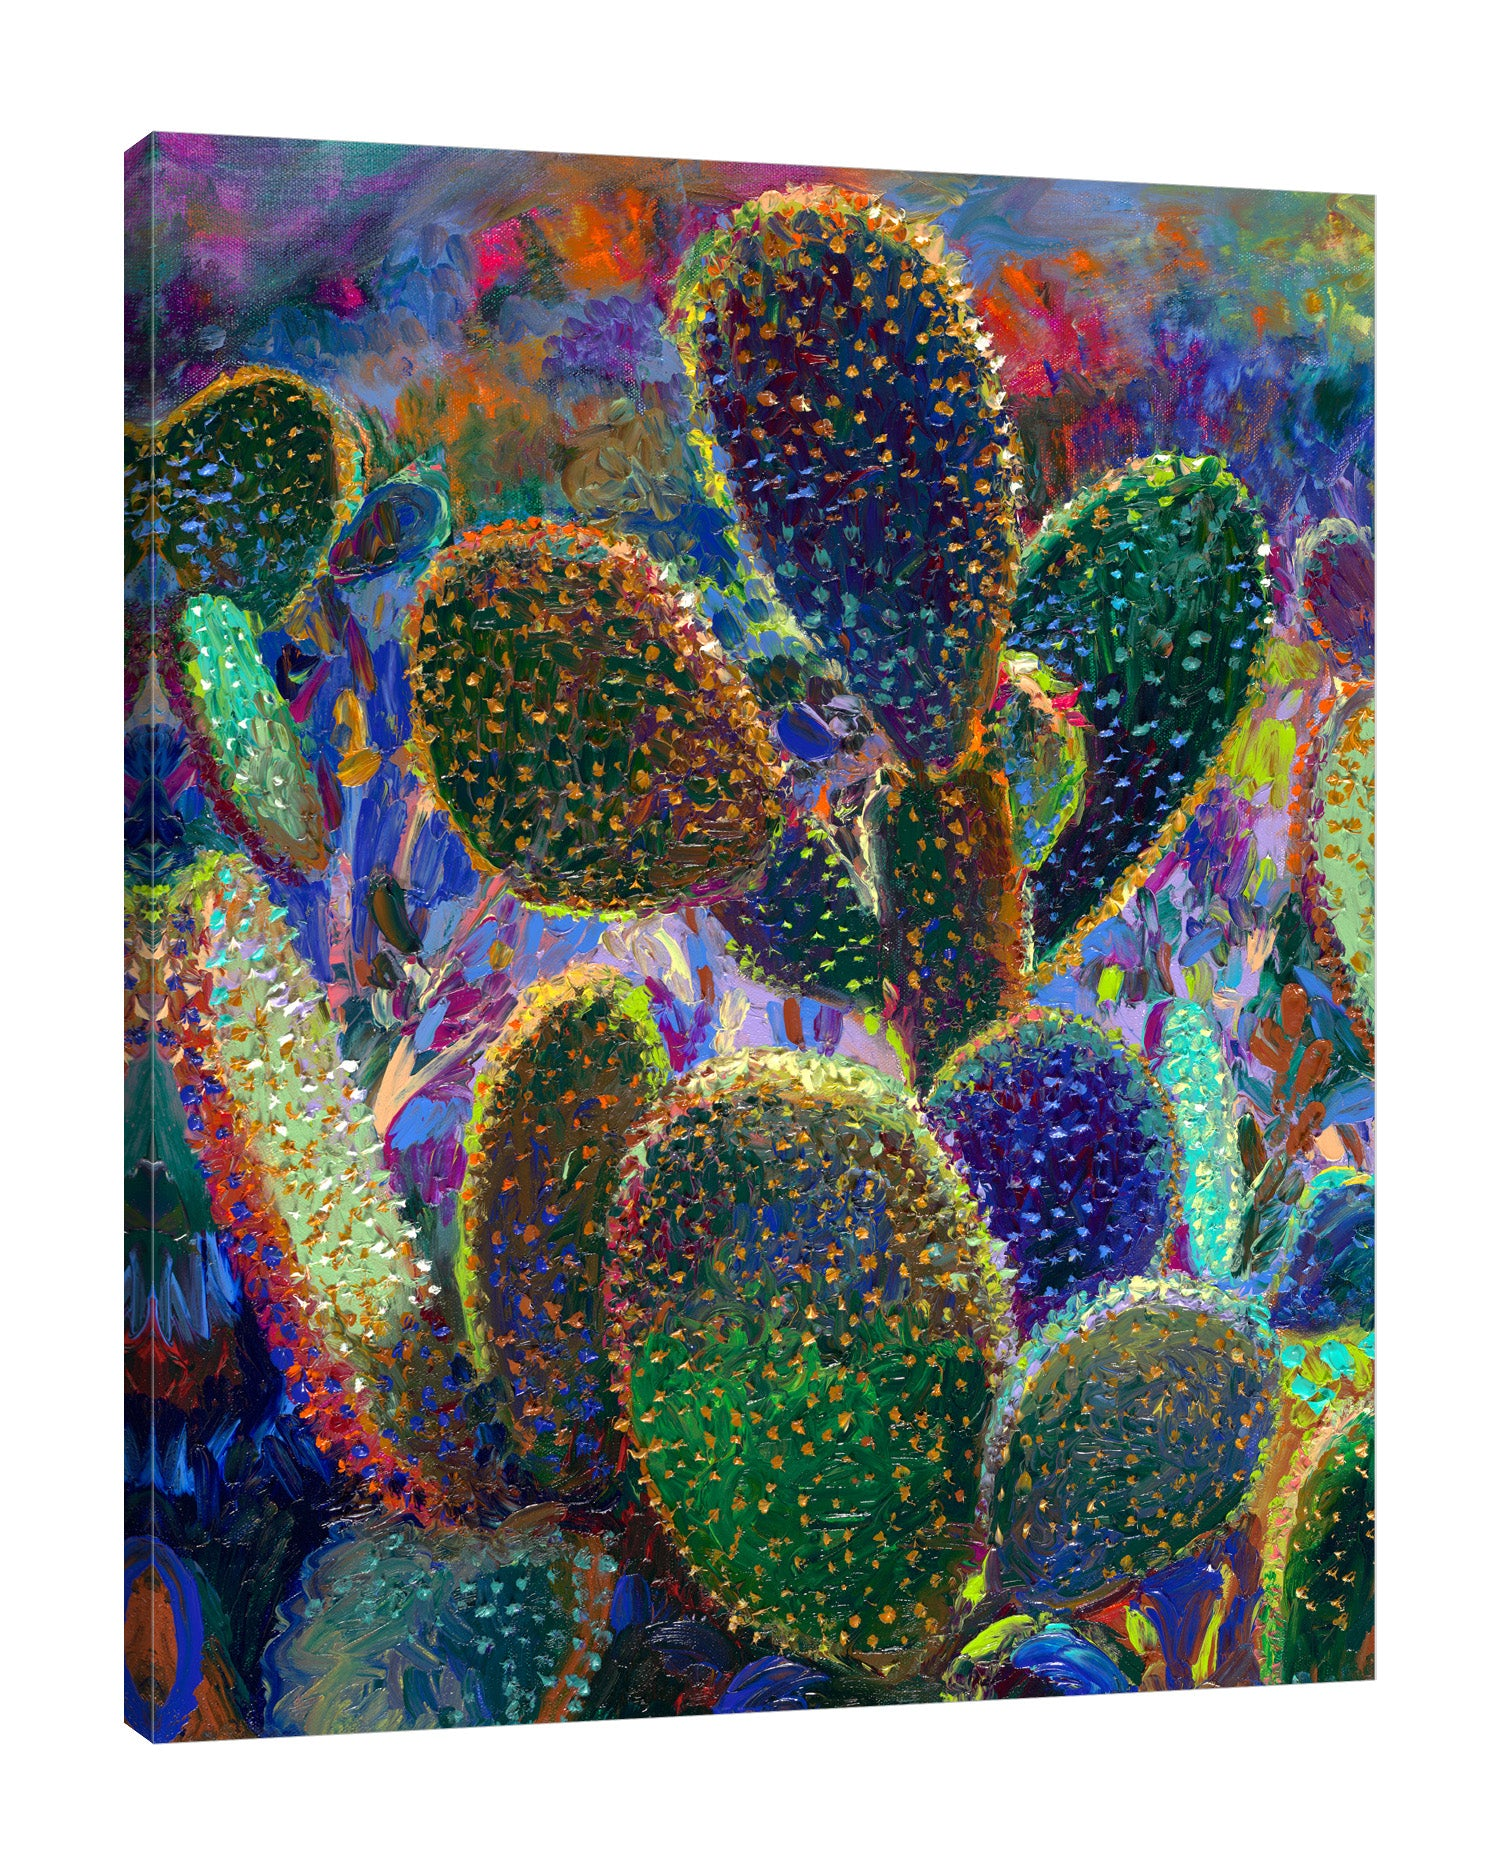 Iris-Scott,Modern & Contemporary,Floral & Botanical,Impressionism,surreal,finger paint,nature,scenic,landscape,floral,cactus,night,,